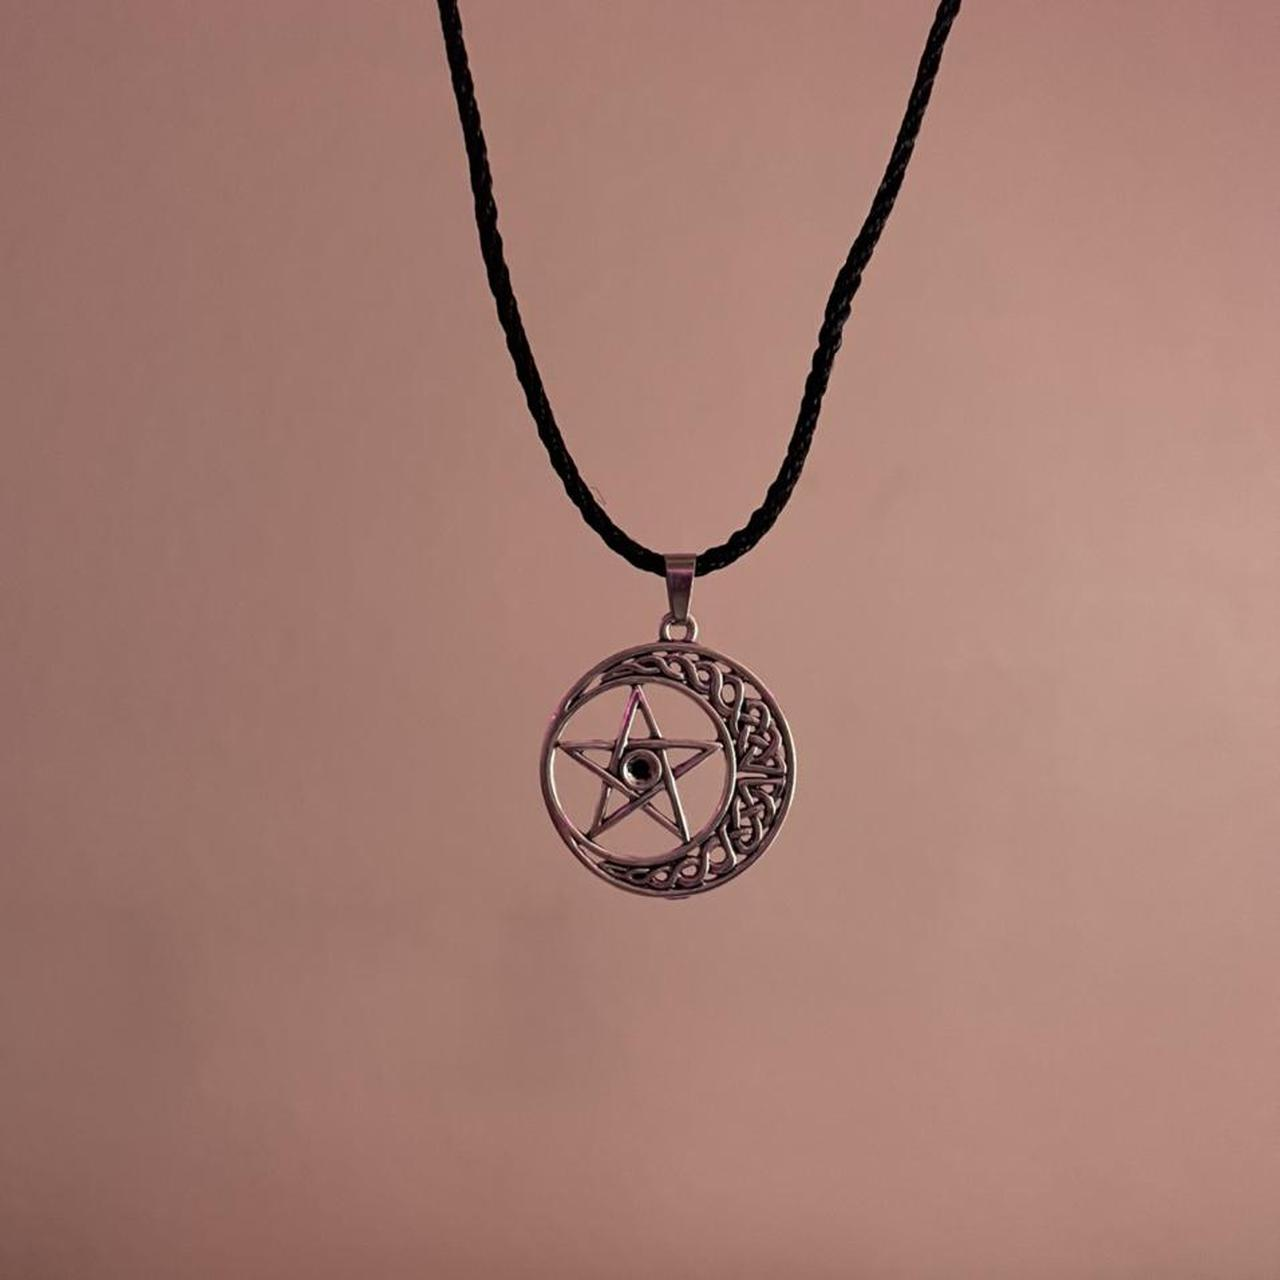 Product Image 1 - Star inside Celtic moon necklace Bought